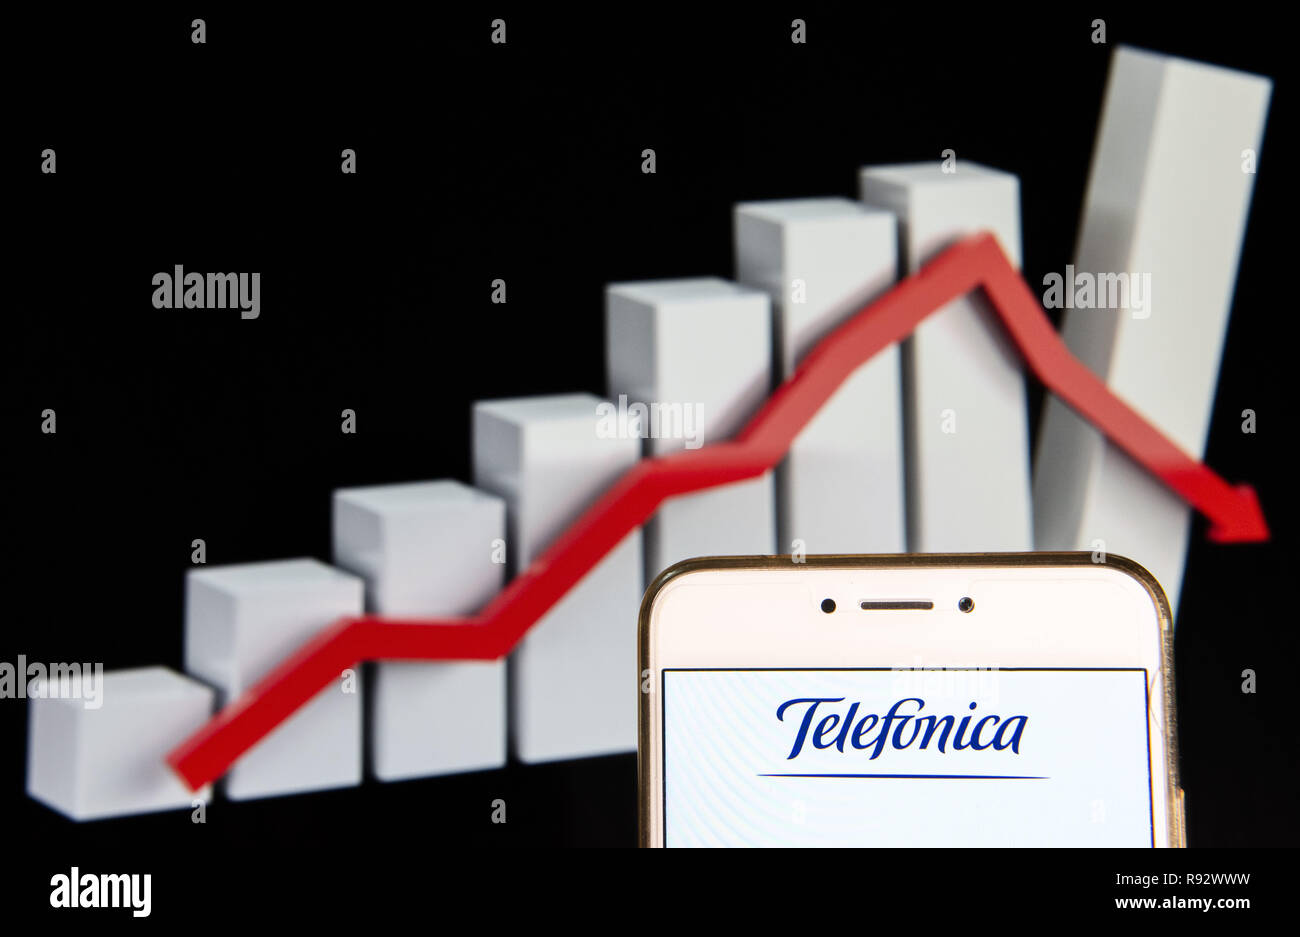 Hong Kong. 14th Dec, 2018. Spanish multinational telecommunications company Telefonica logo is seen on an Android mobile device with a decline loses graph in the background. Credit: Miguel Candela/SOPA Images/ZUMA Wire/Alamy Live News - Stock Image